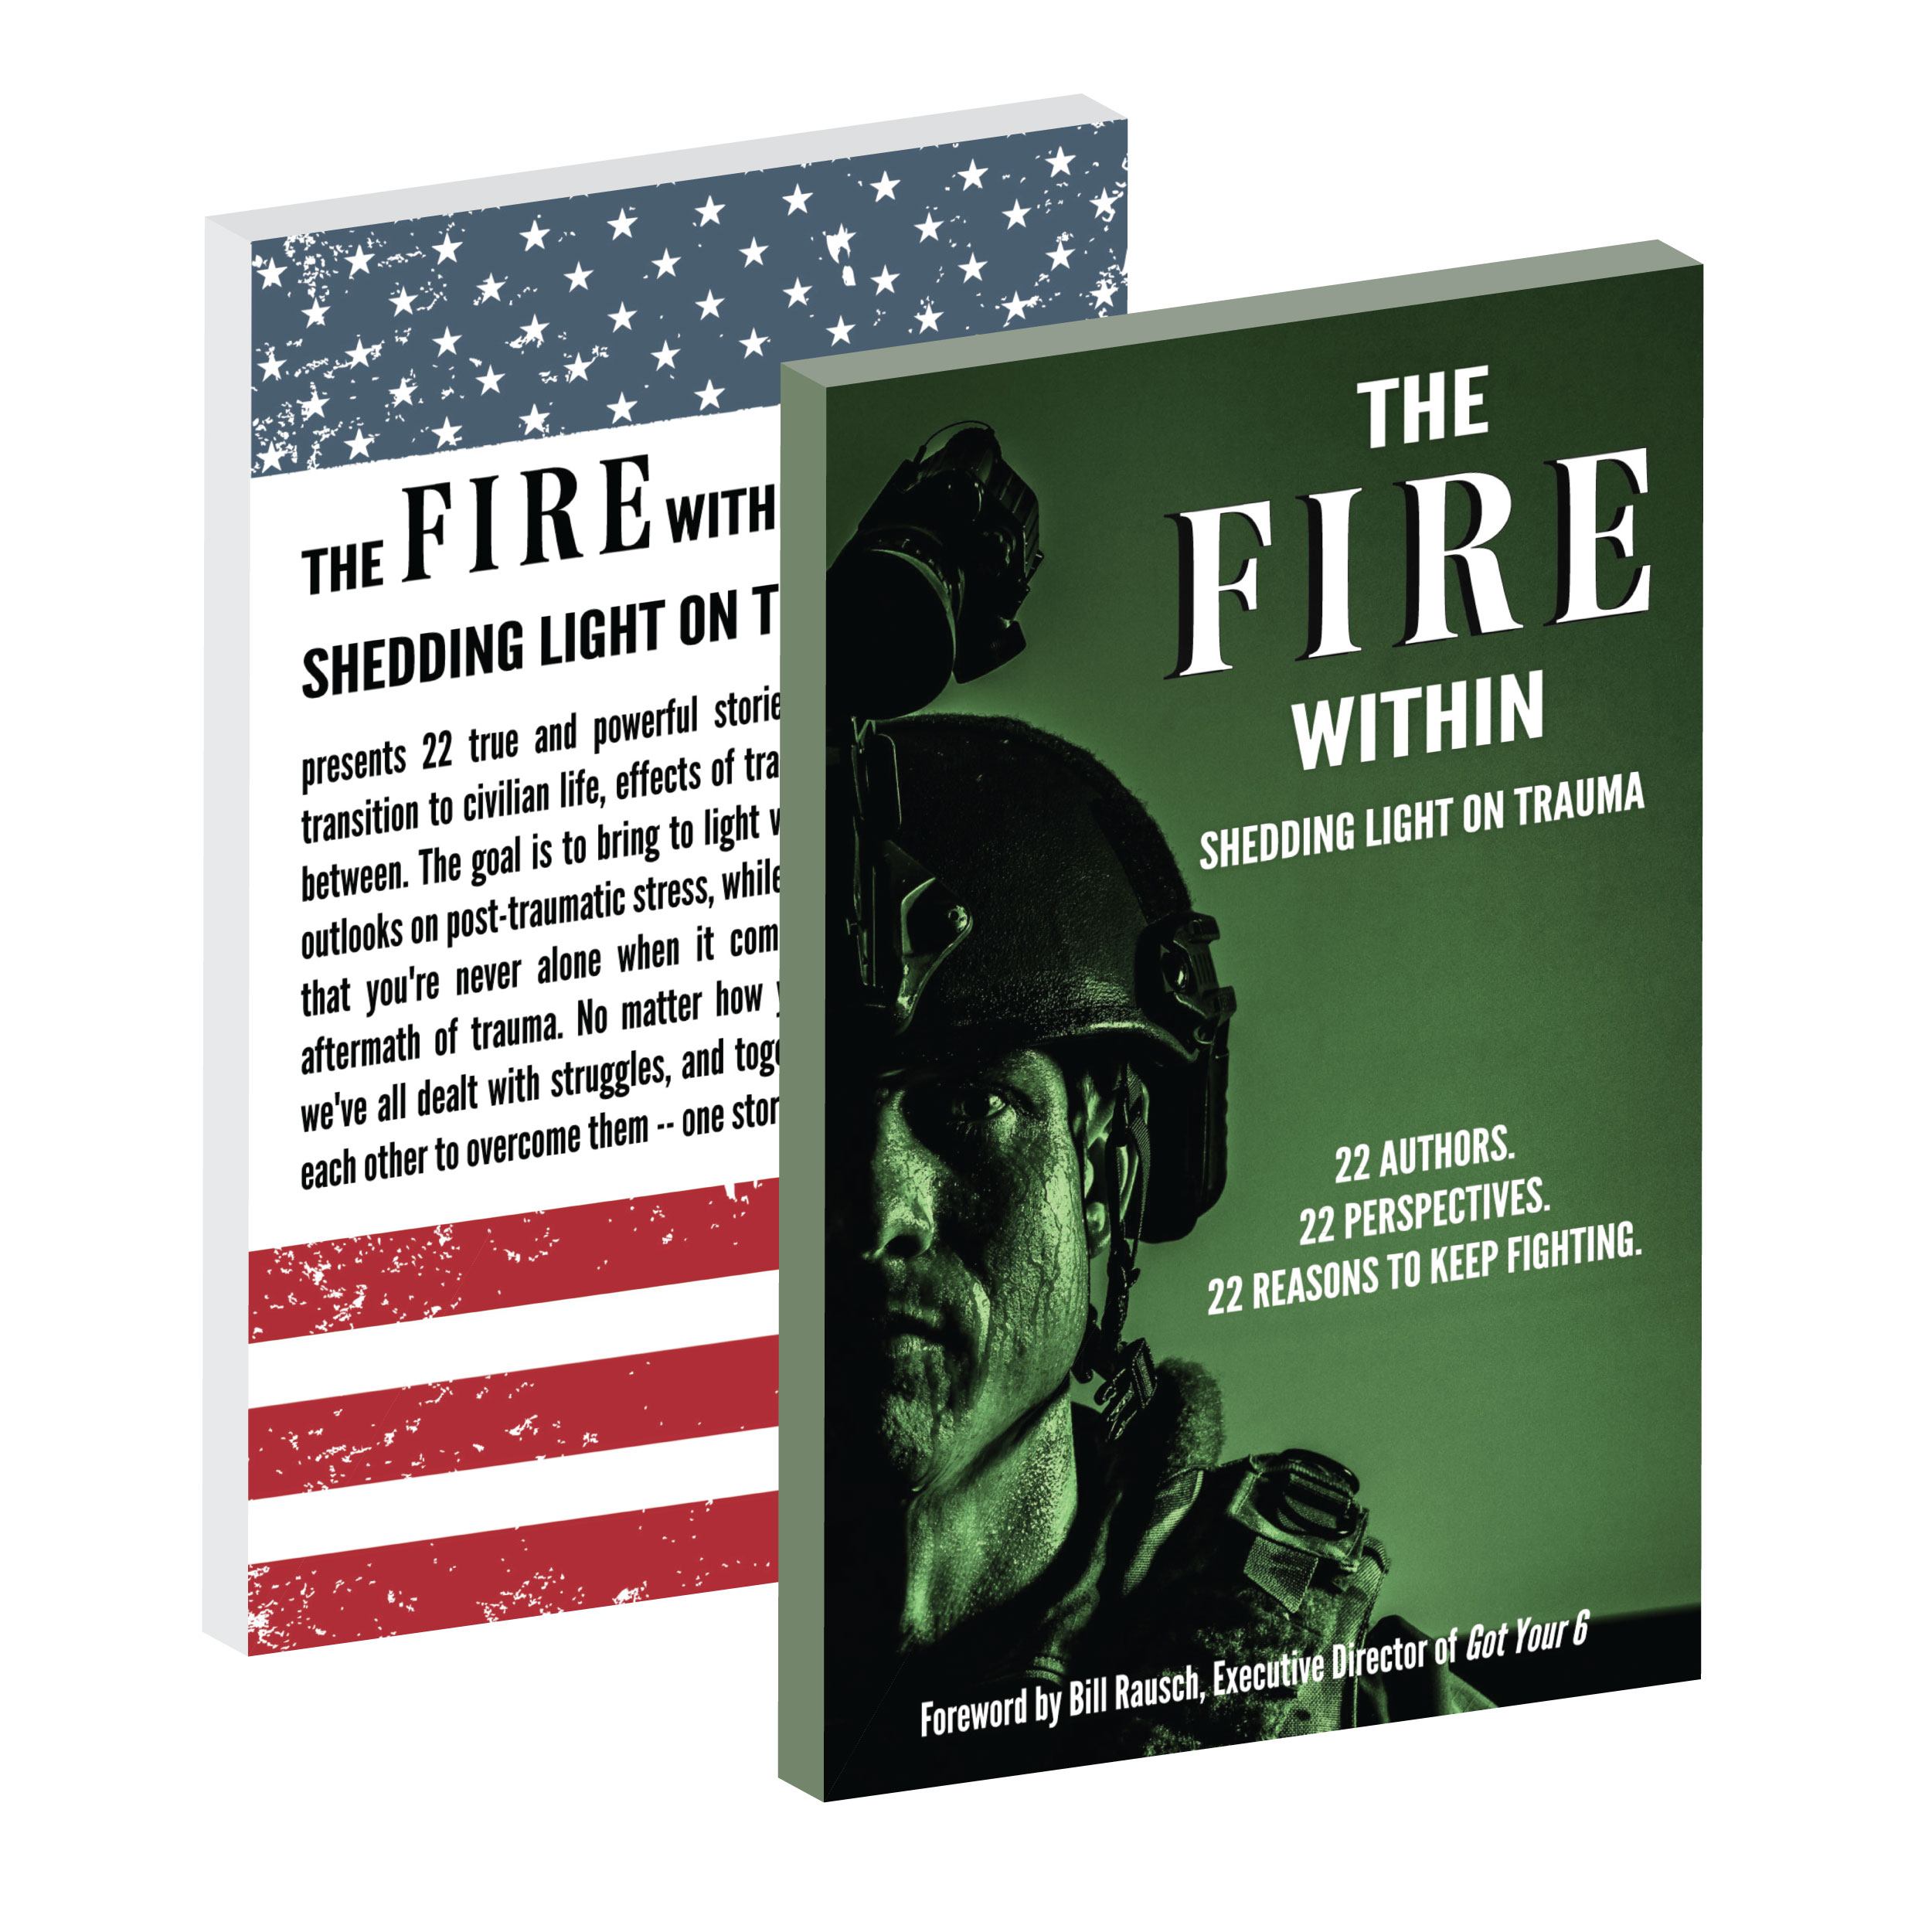 TheFireWithin_BOOKCOVER.jpg